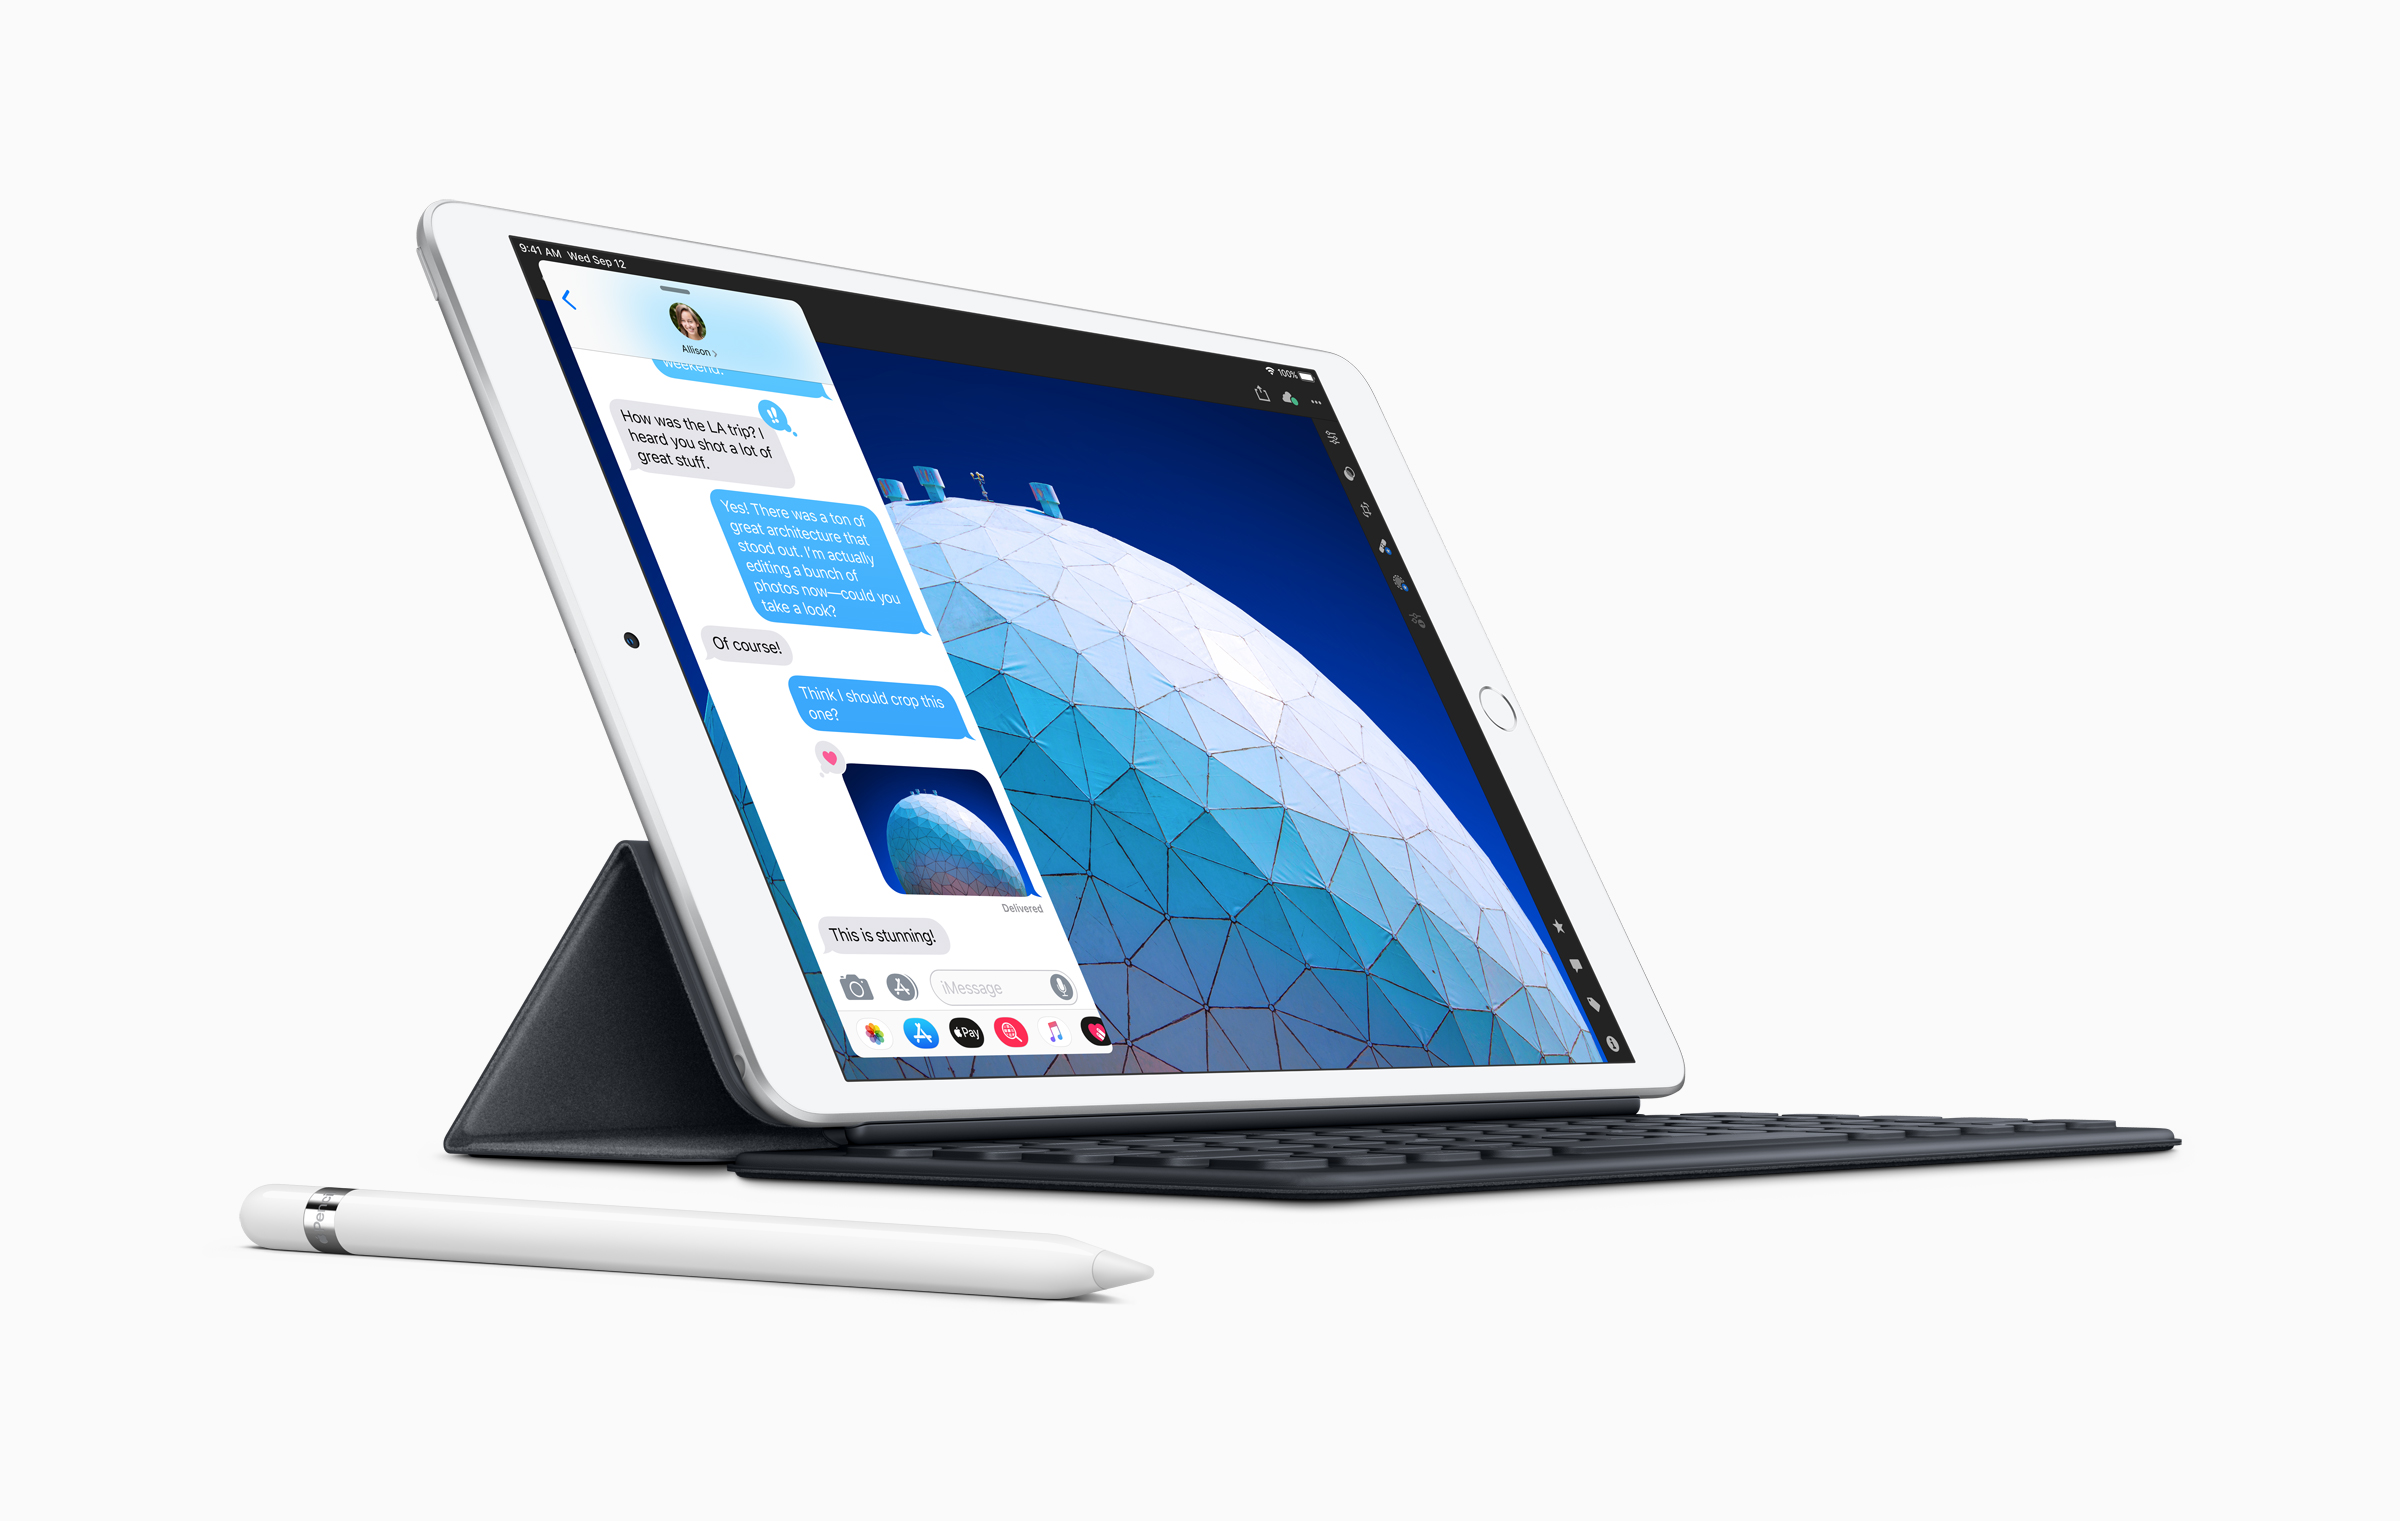 Nowy Apple Ipad Air oraz Apple Ipad mini 5